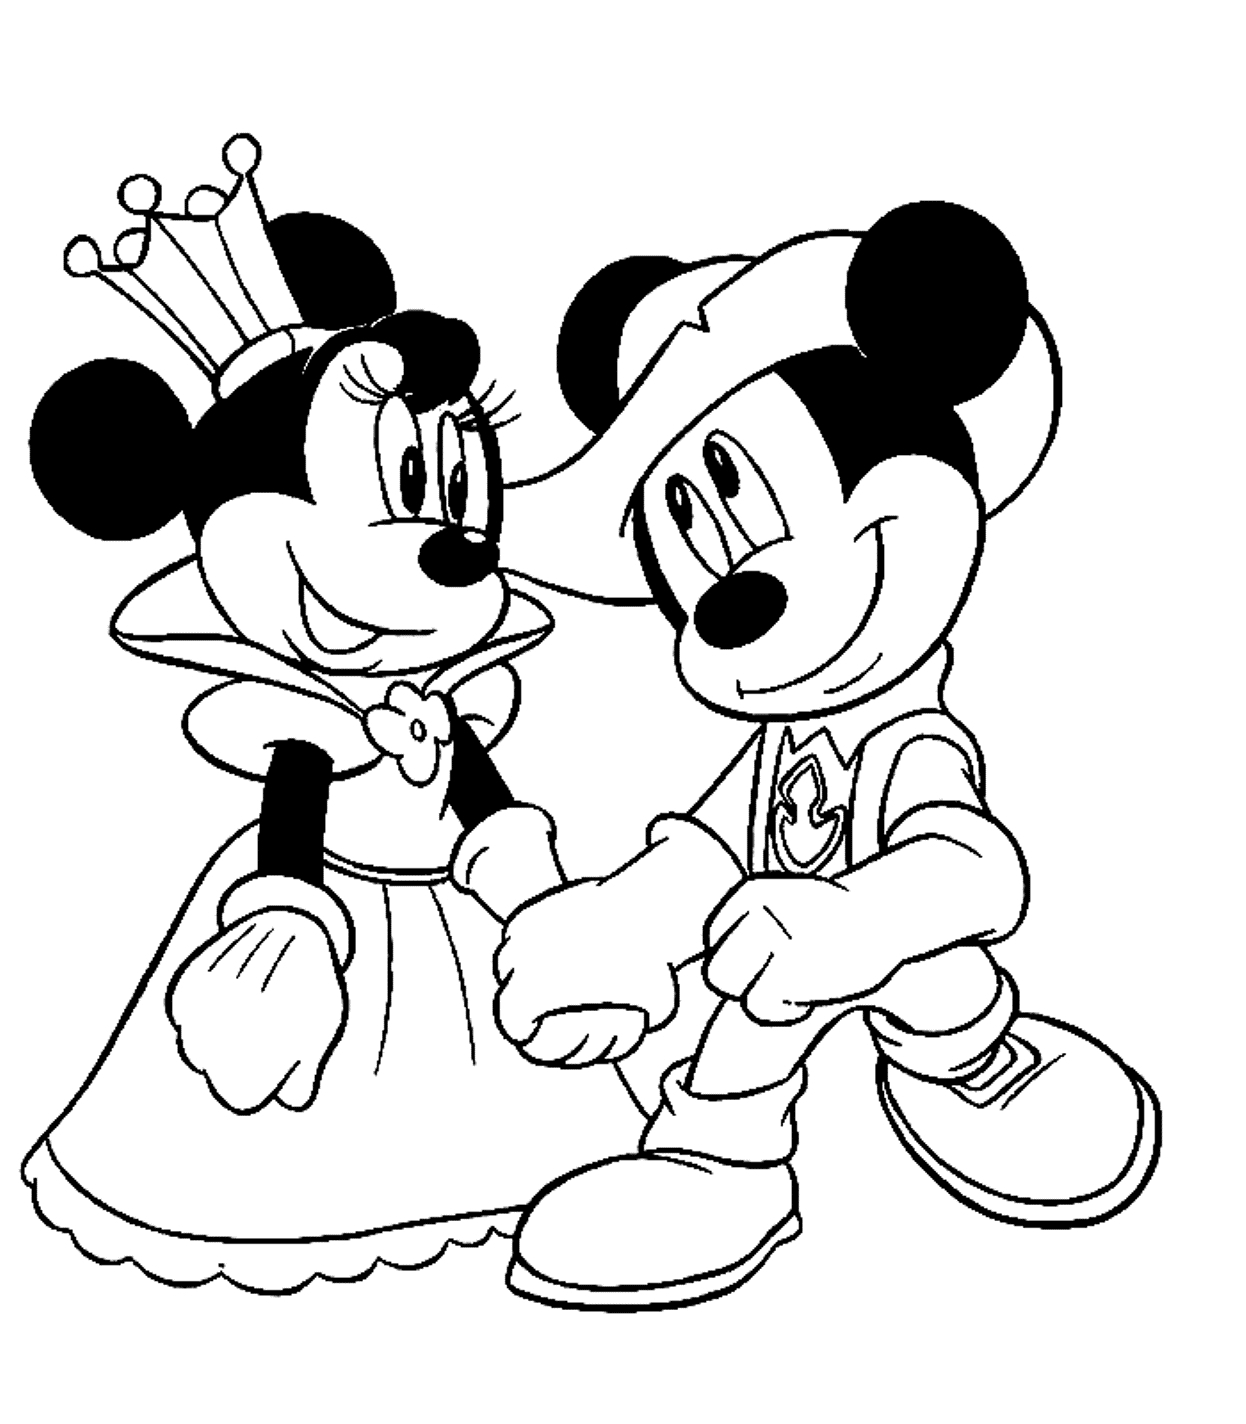 1246x1424 Mickey And Minnie Mouse For Drawing Mickey Mouse And Minnie Mouse